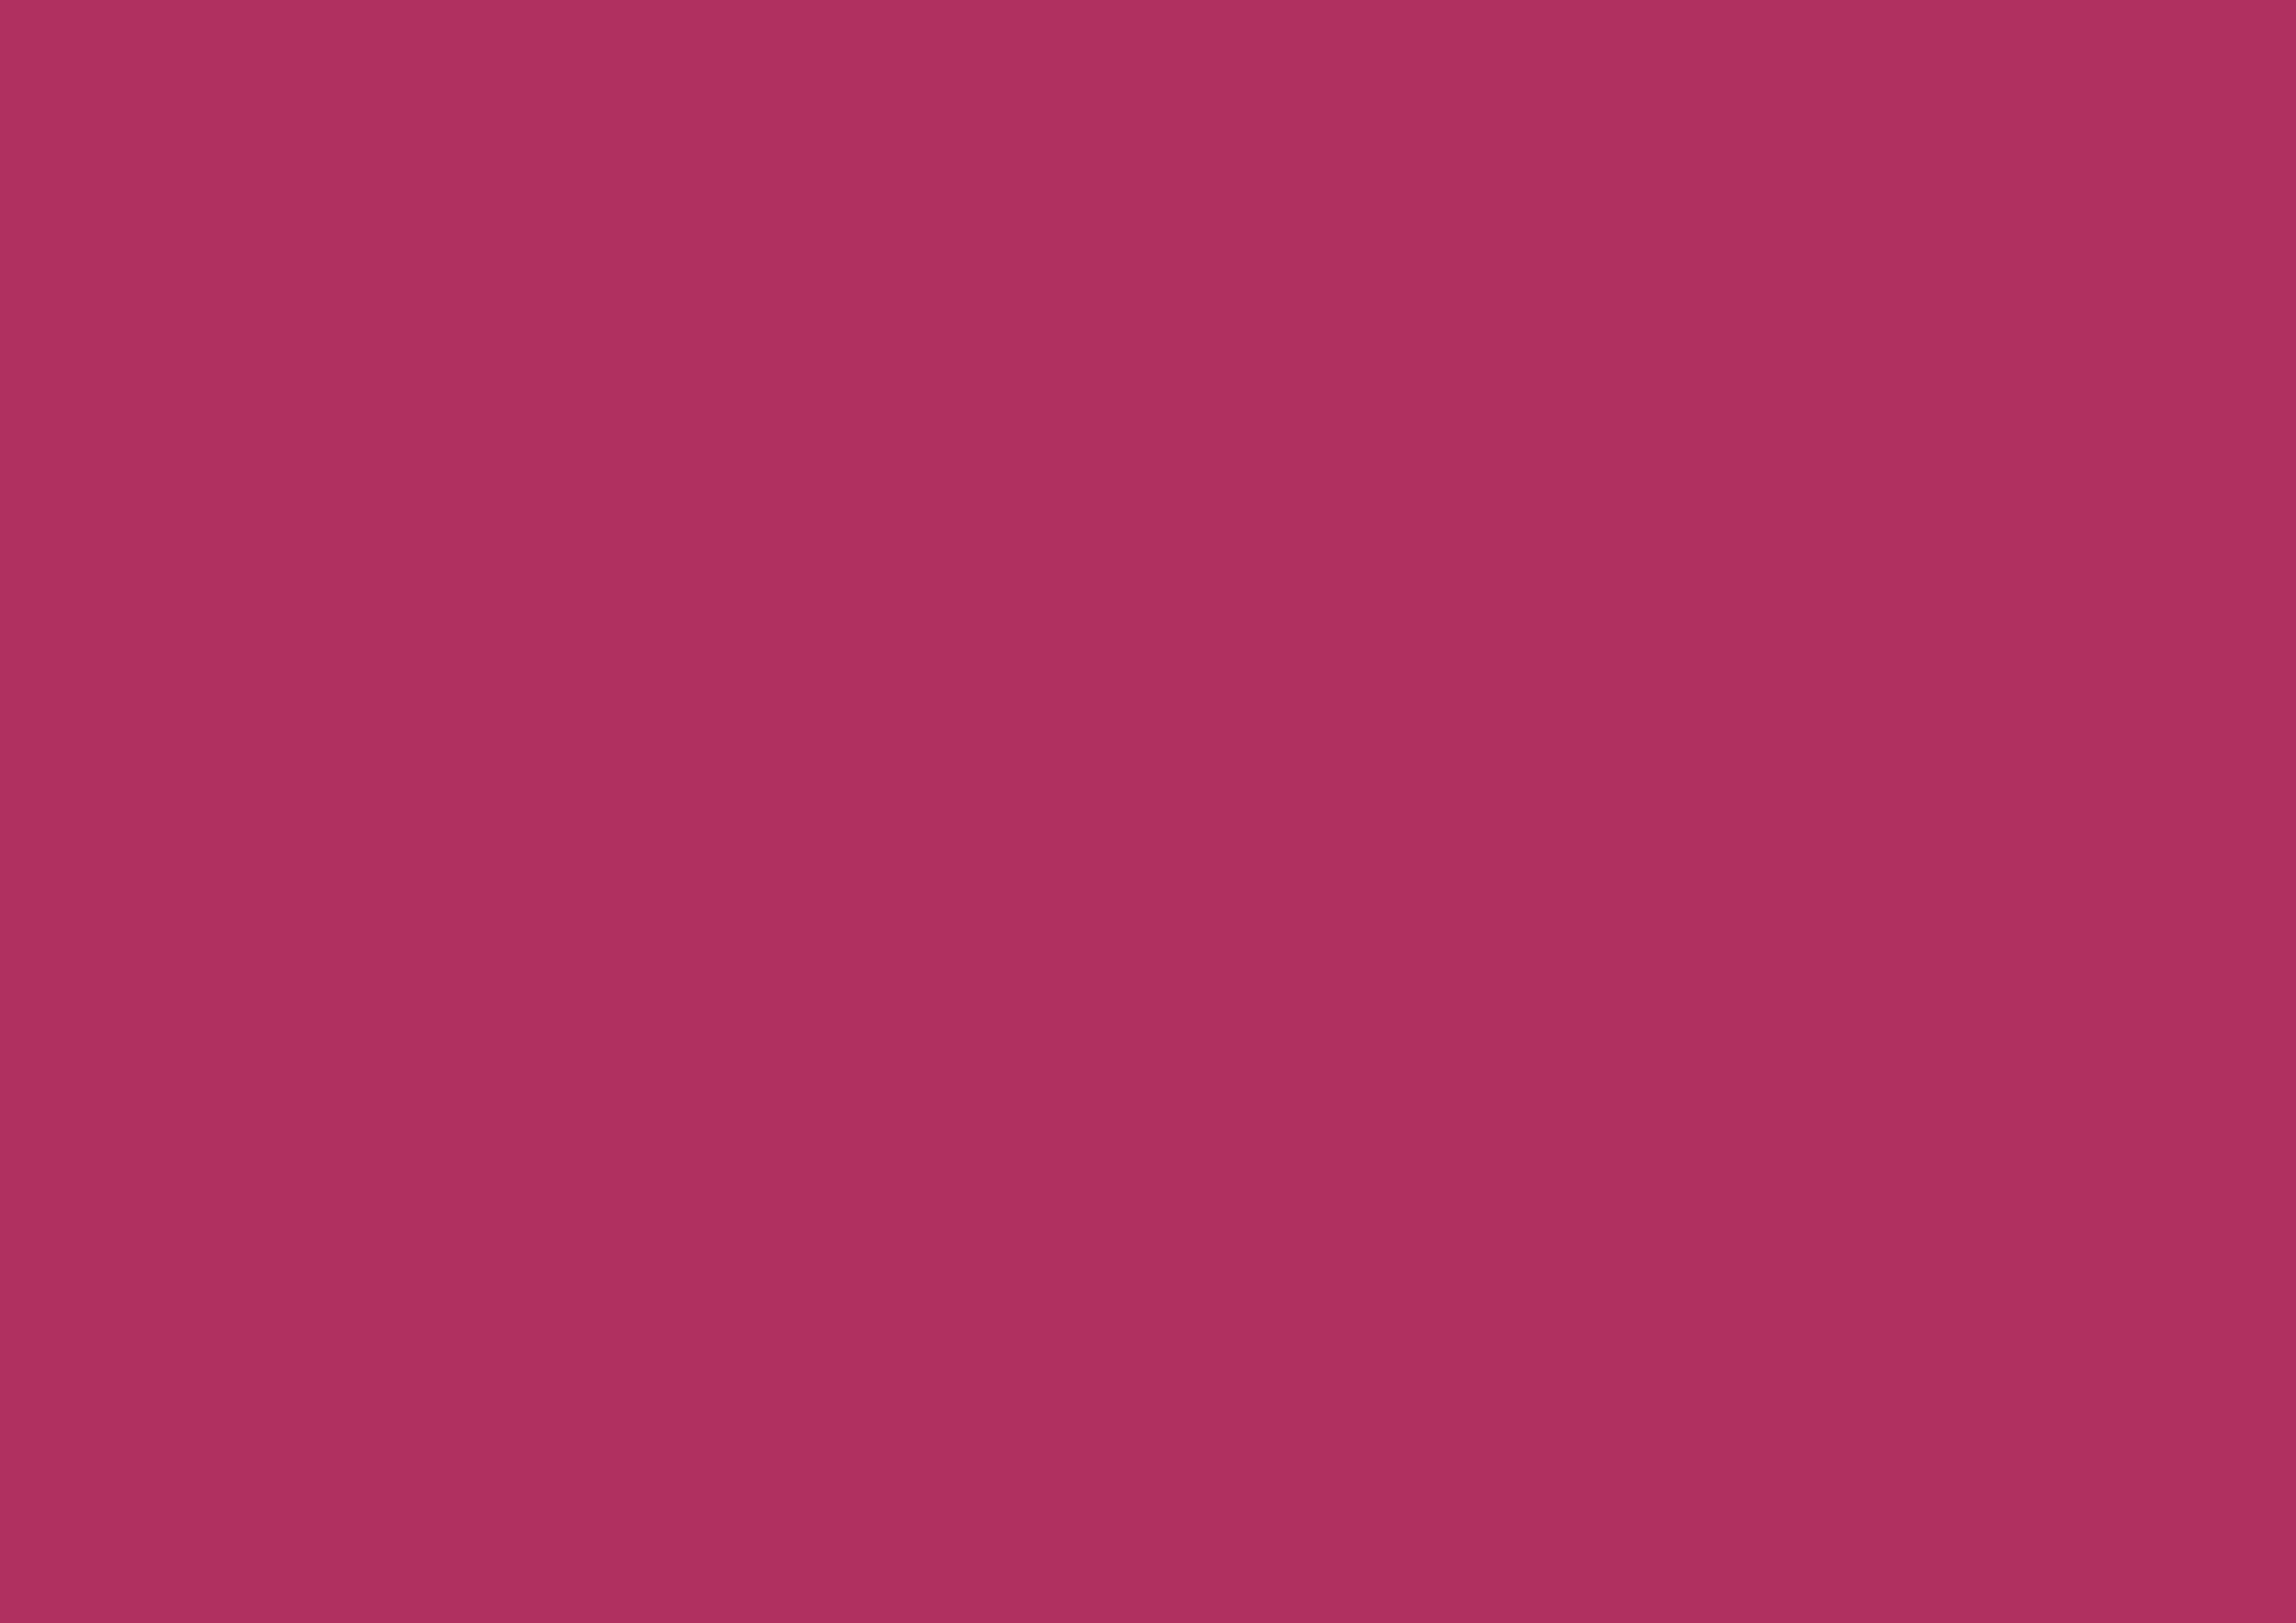 3508x2480 Maroon X11 Gui Solid Color Background